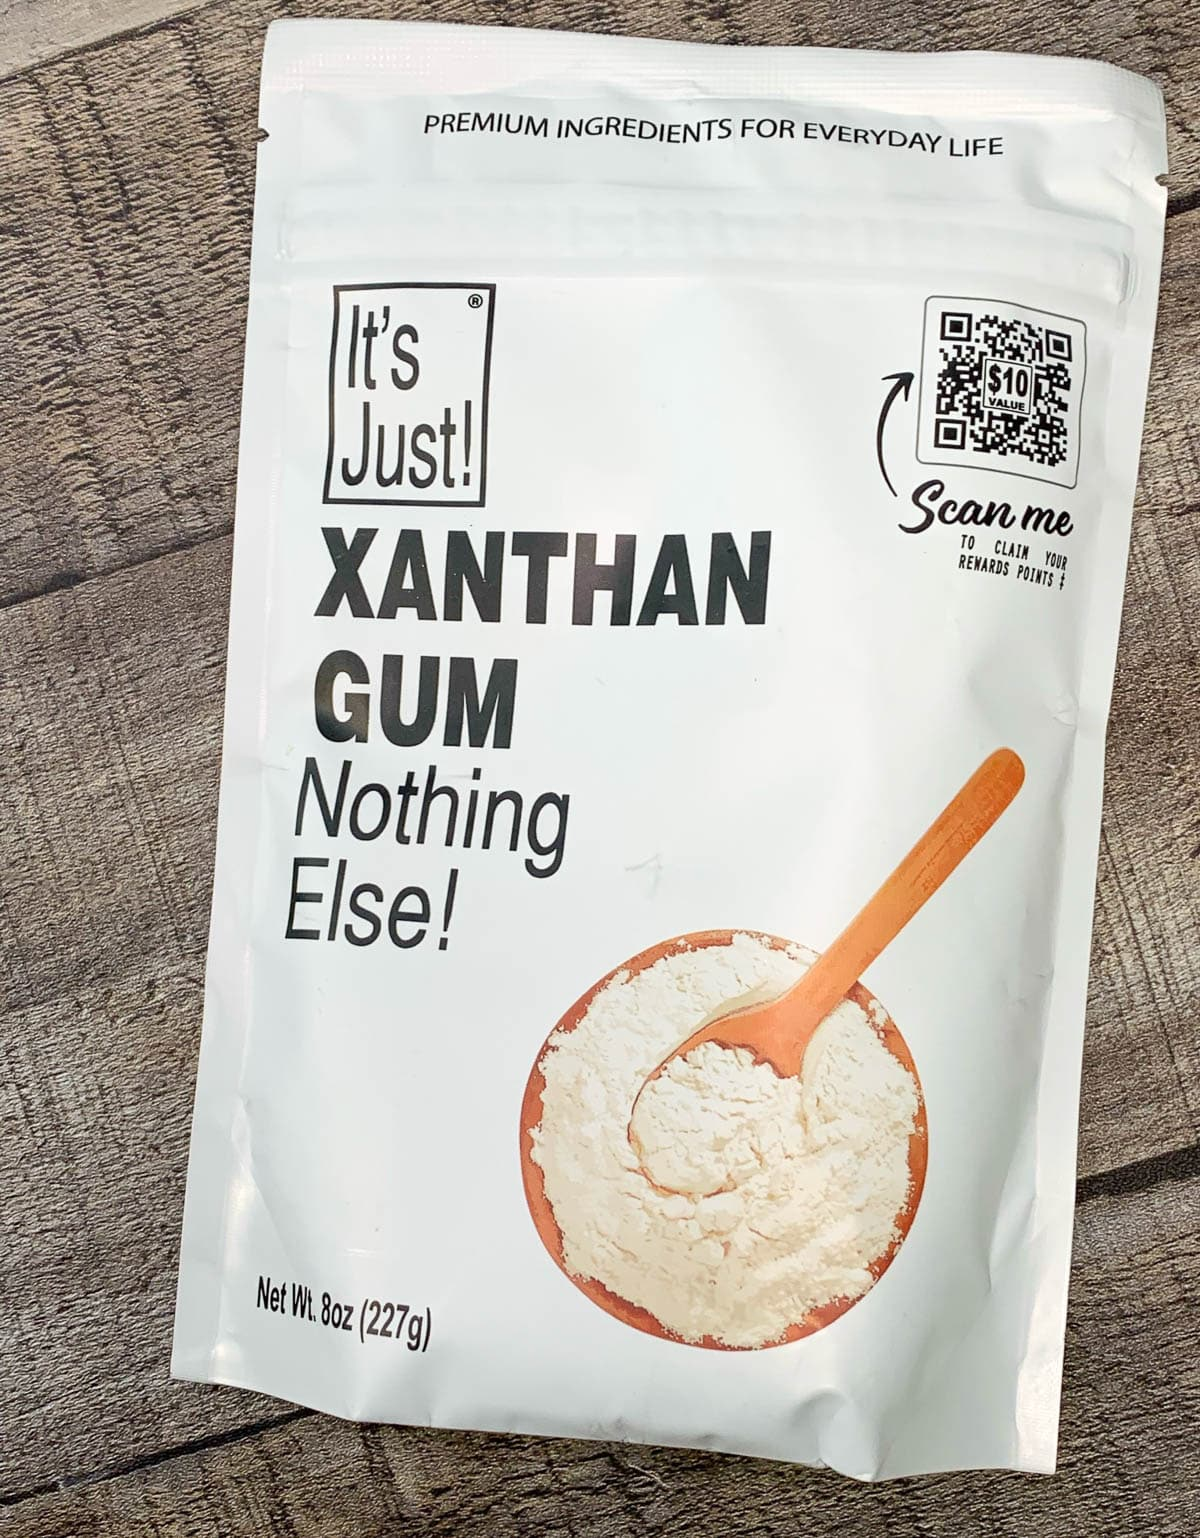 package of xanthan gum